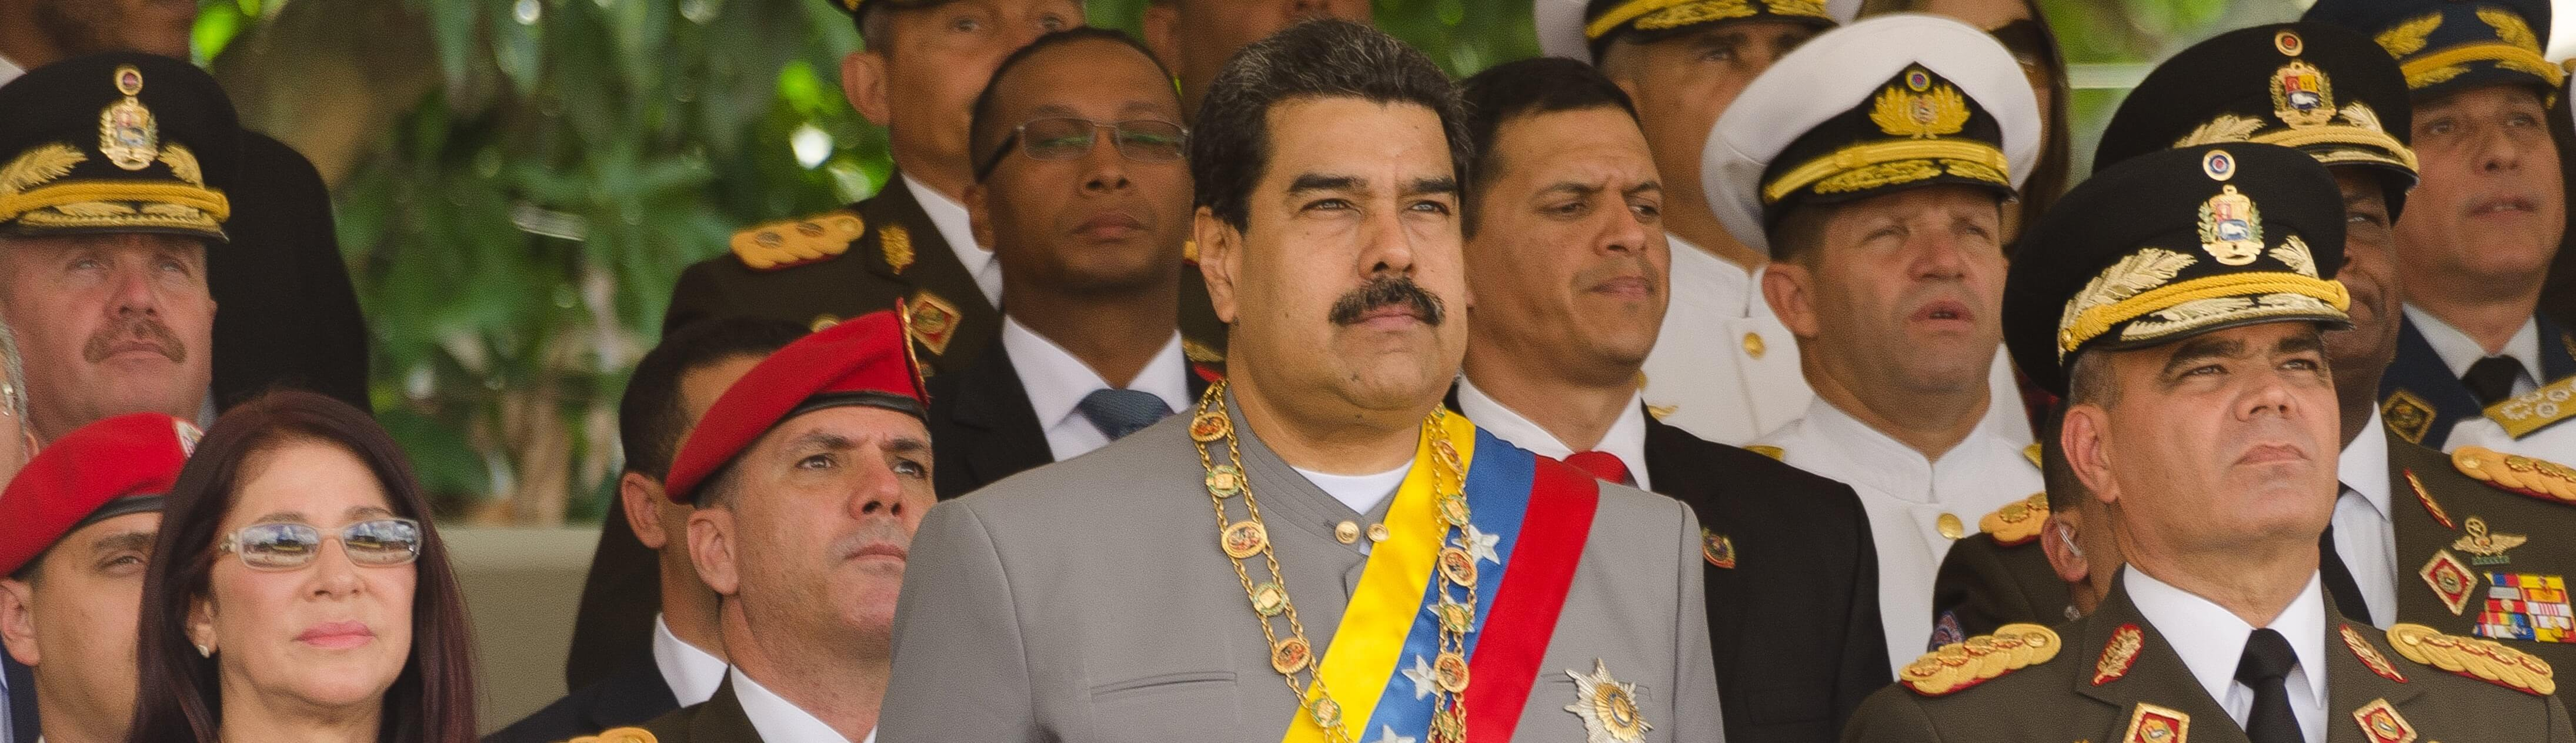 "President Maduro announces the creation of a cryptocurrency in Venezuela, the ""petro"""